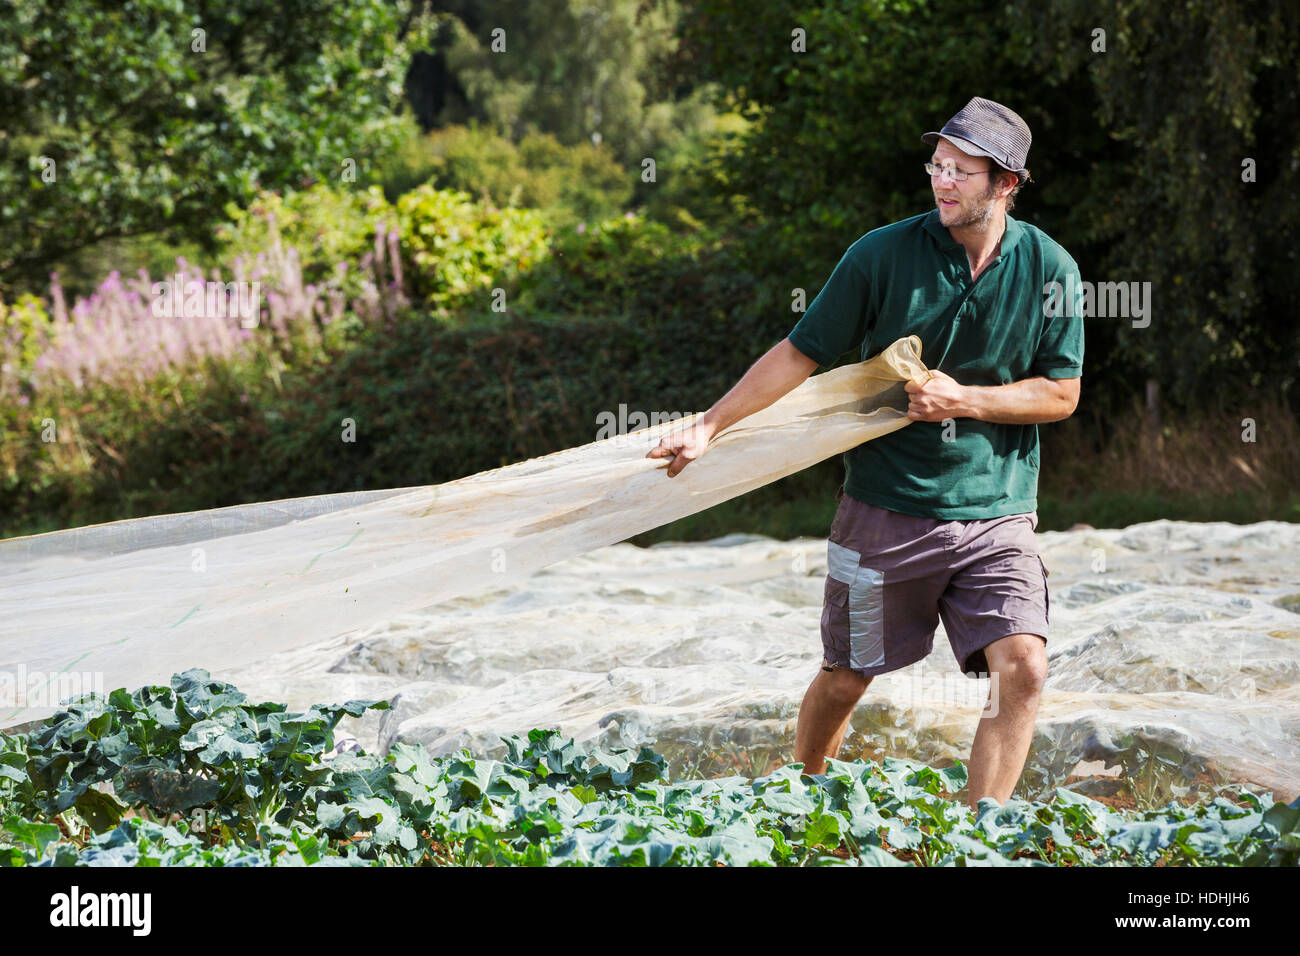 A man pulling a sheet of horticultural fleece over a crop of curly kale plants. - Stock Image